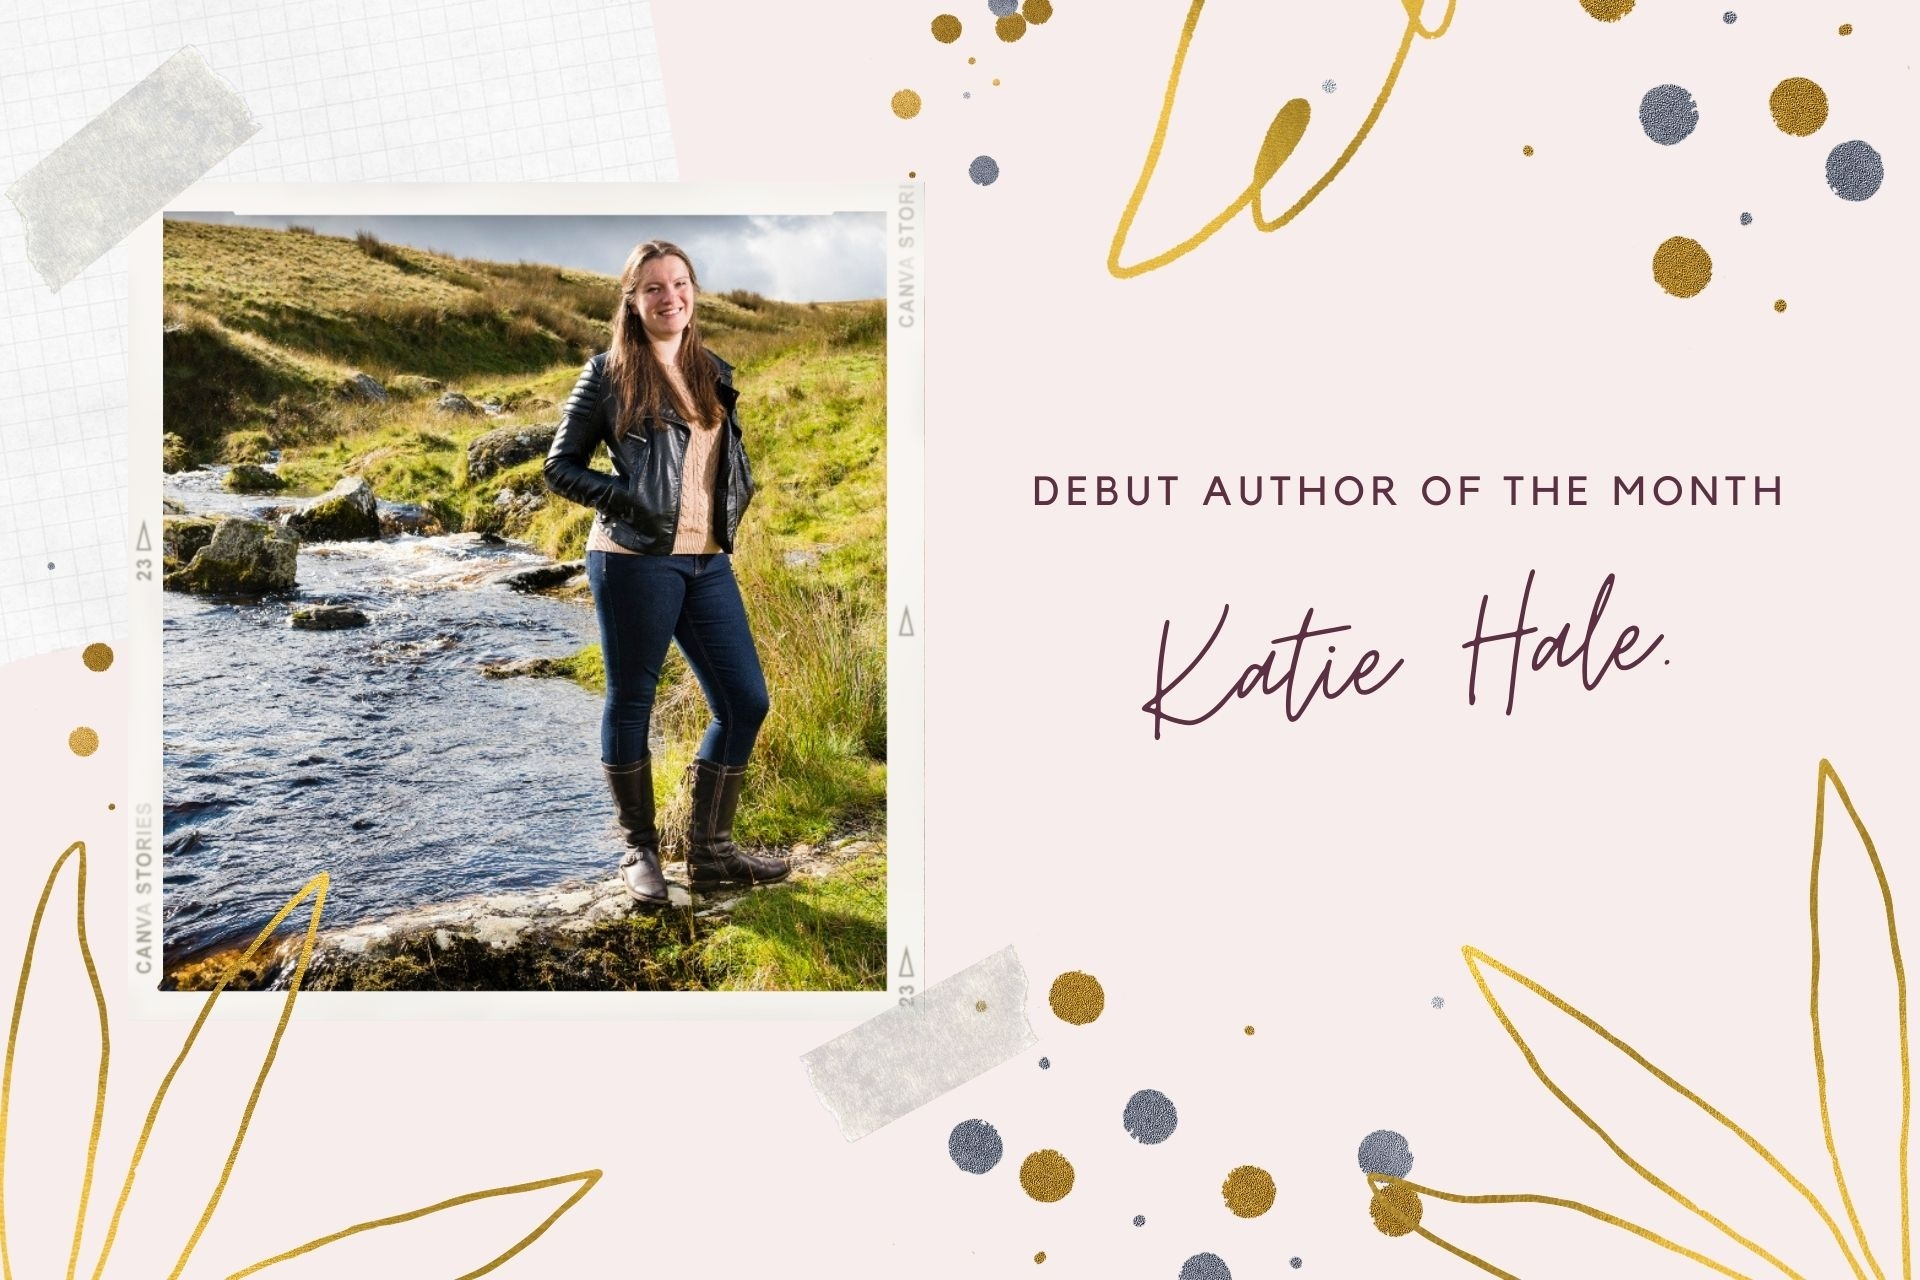 Debut Author of the Month: Katie Hale